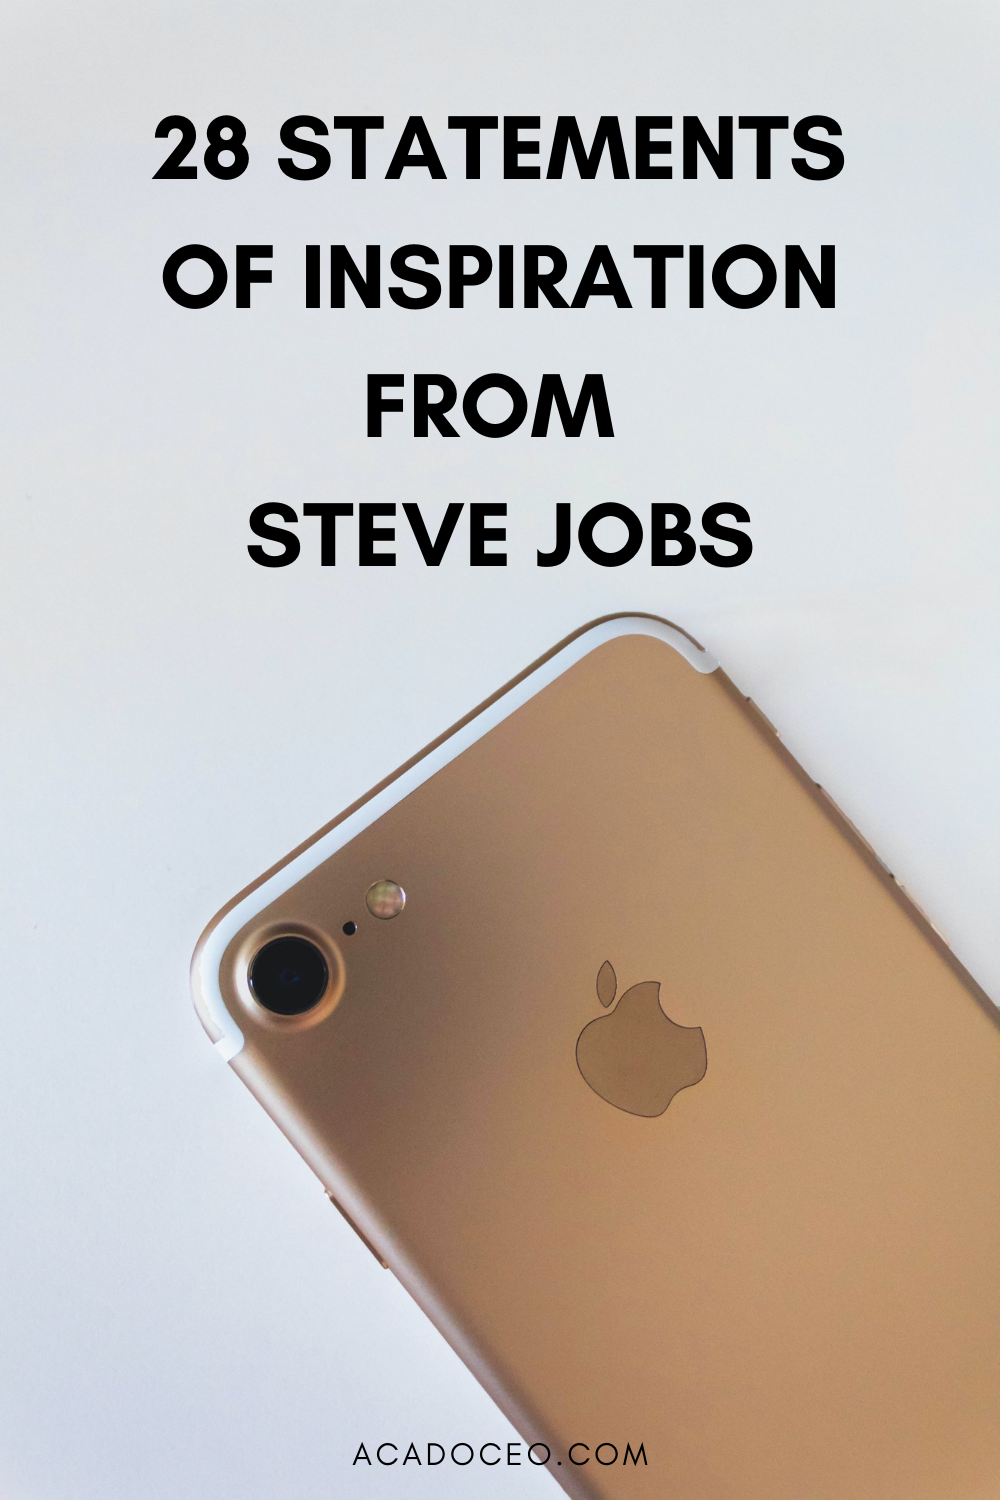 28 STATEMENTS OF INSPIRATION FROM STEVE JOBS